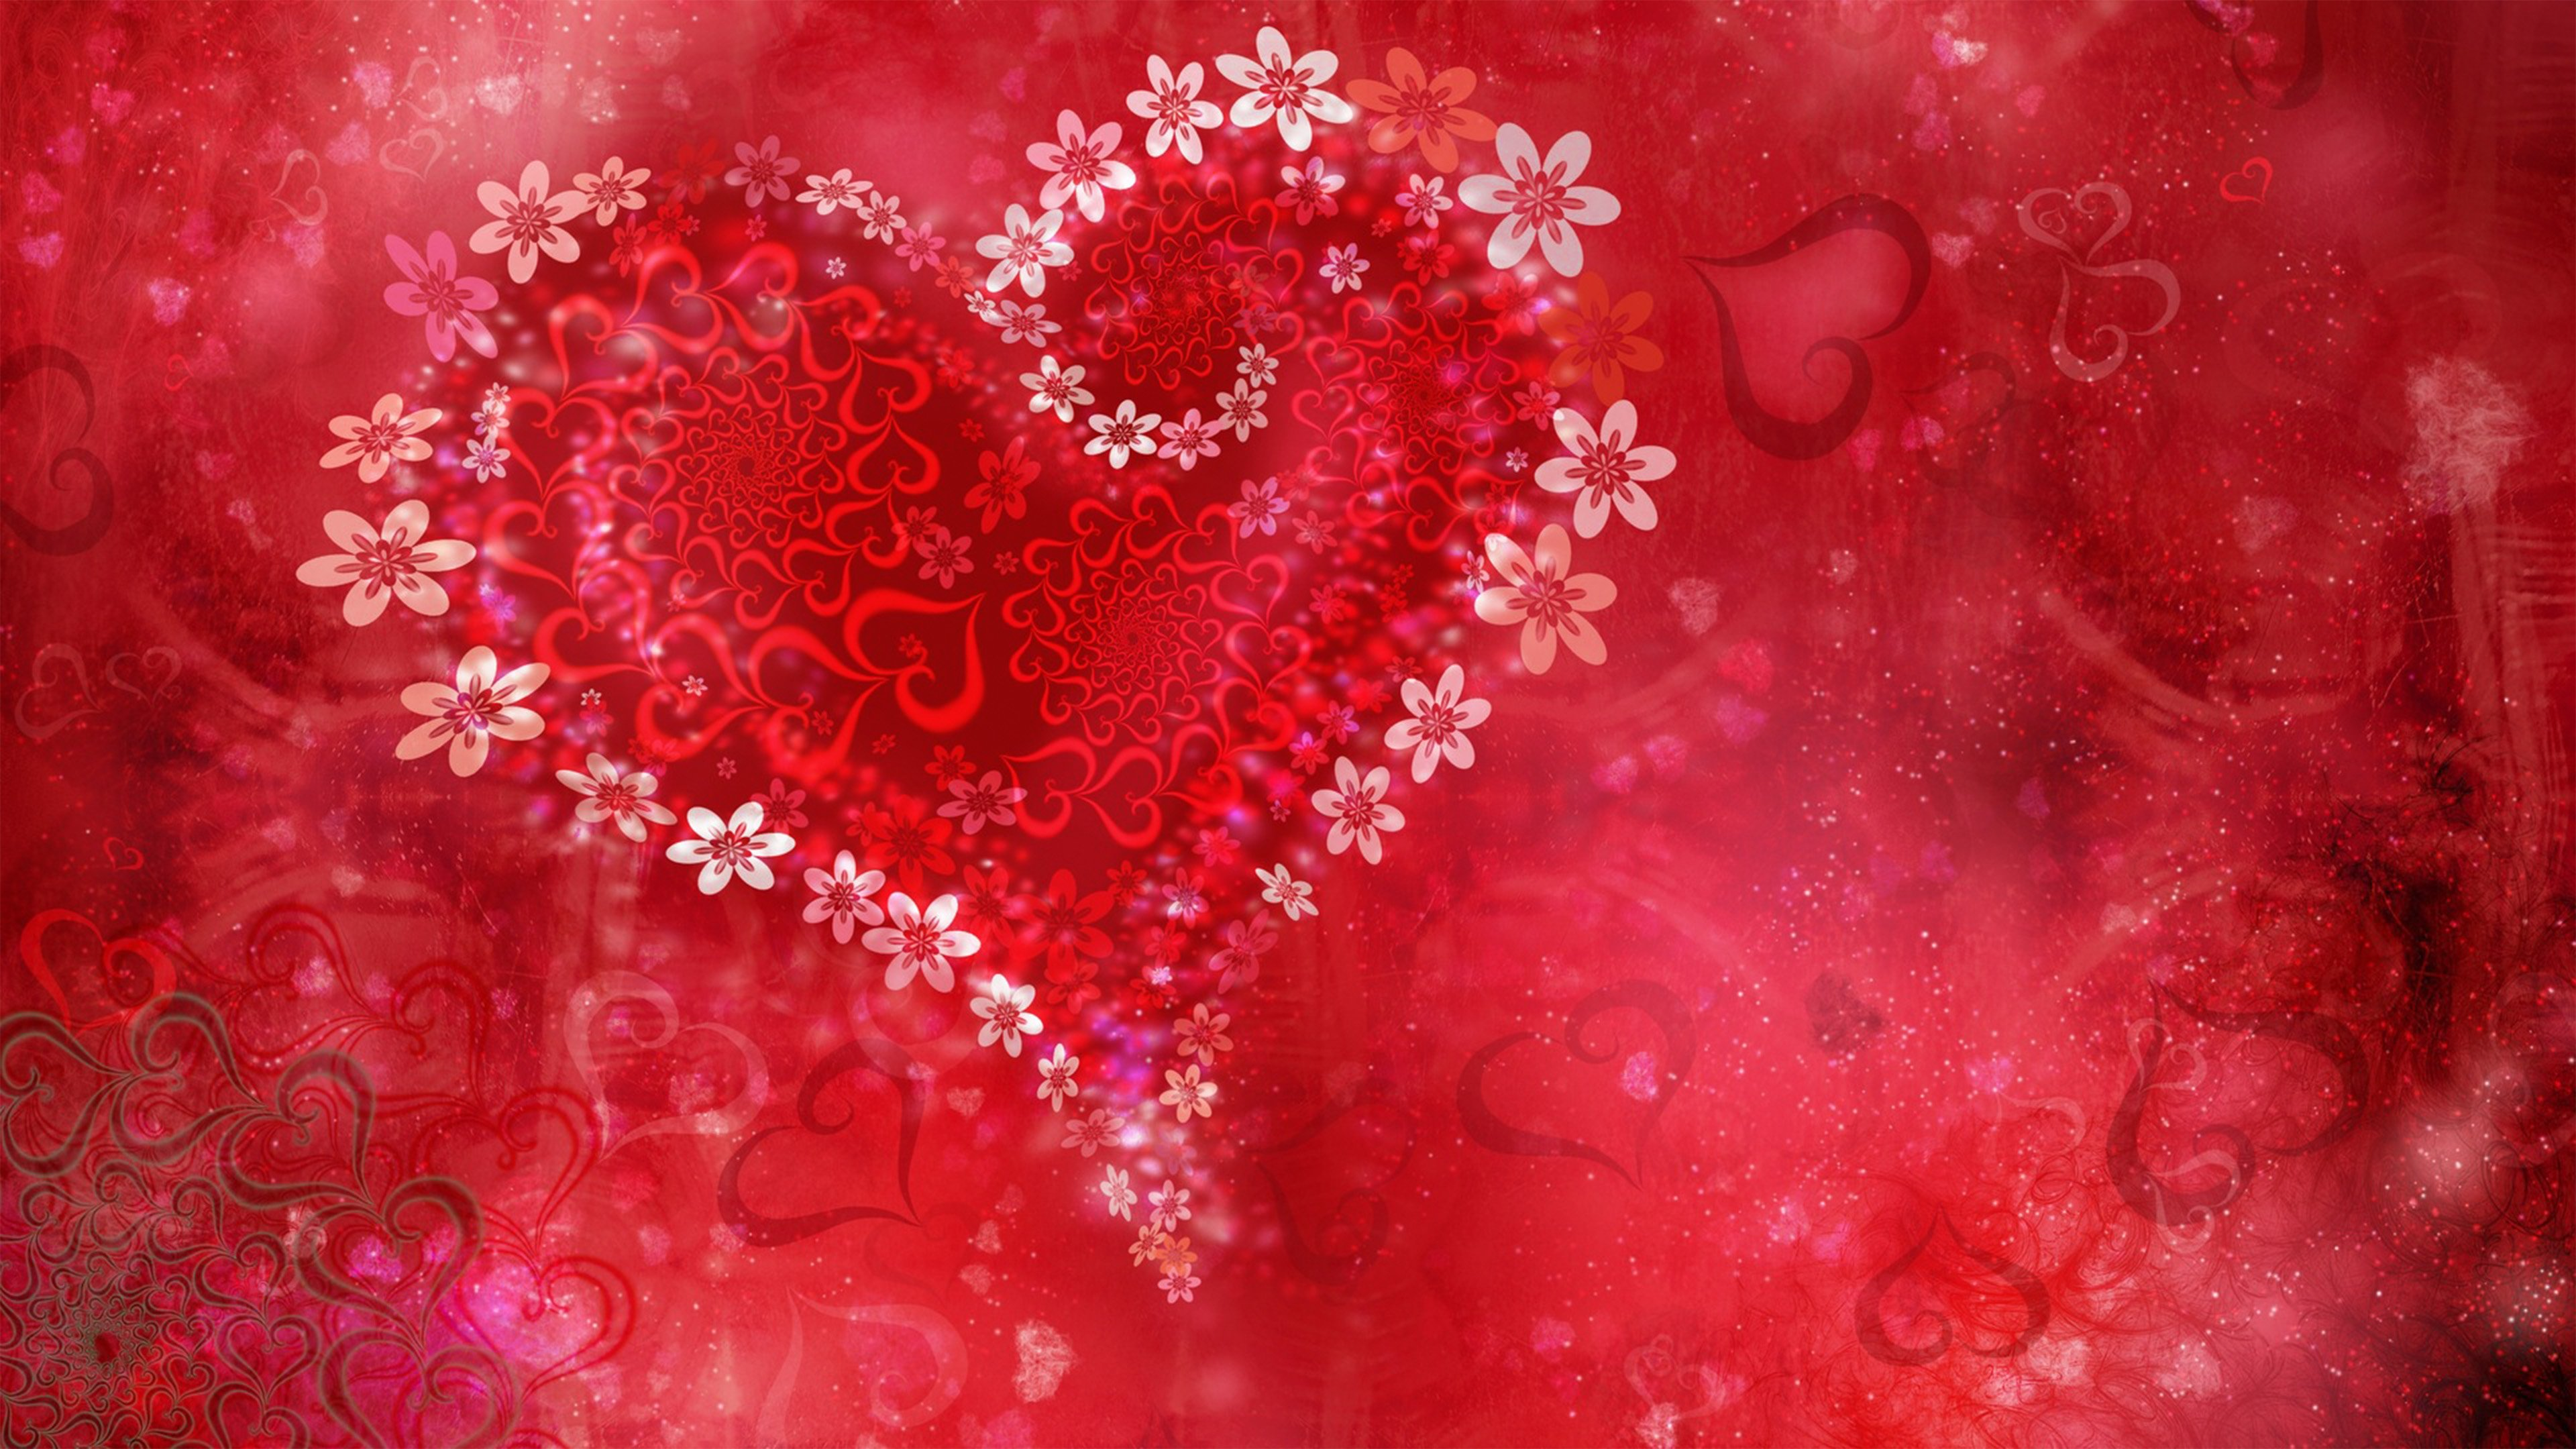 valentine day heart 4k, hd love, 4k wallpapers, images, backgrounds